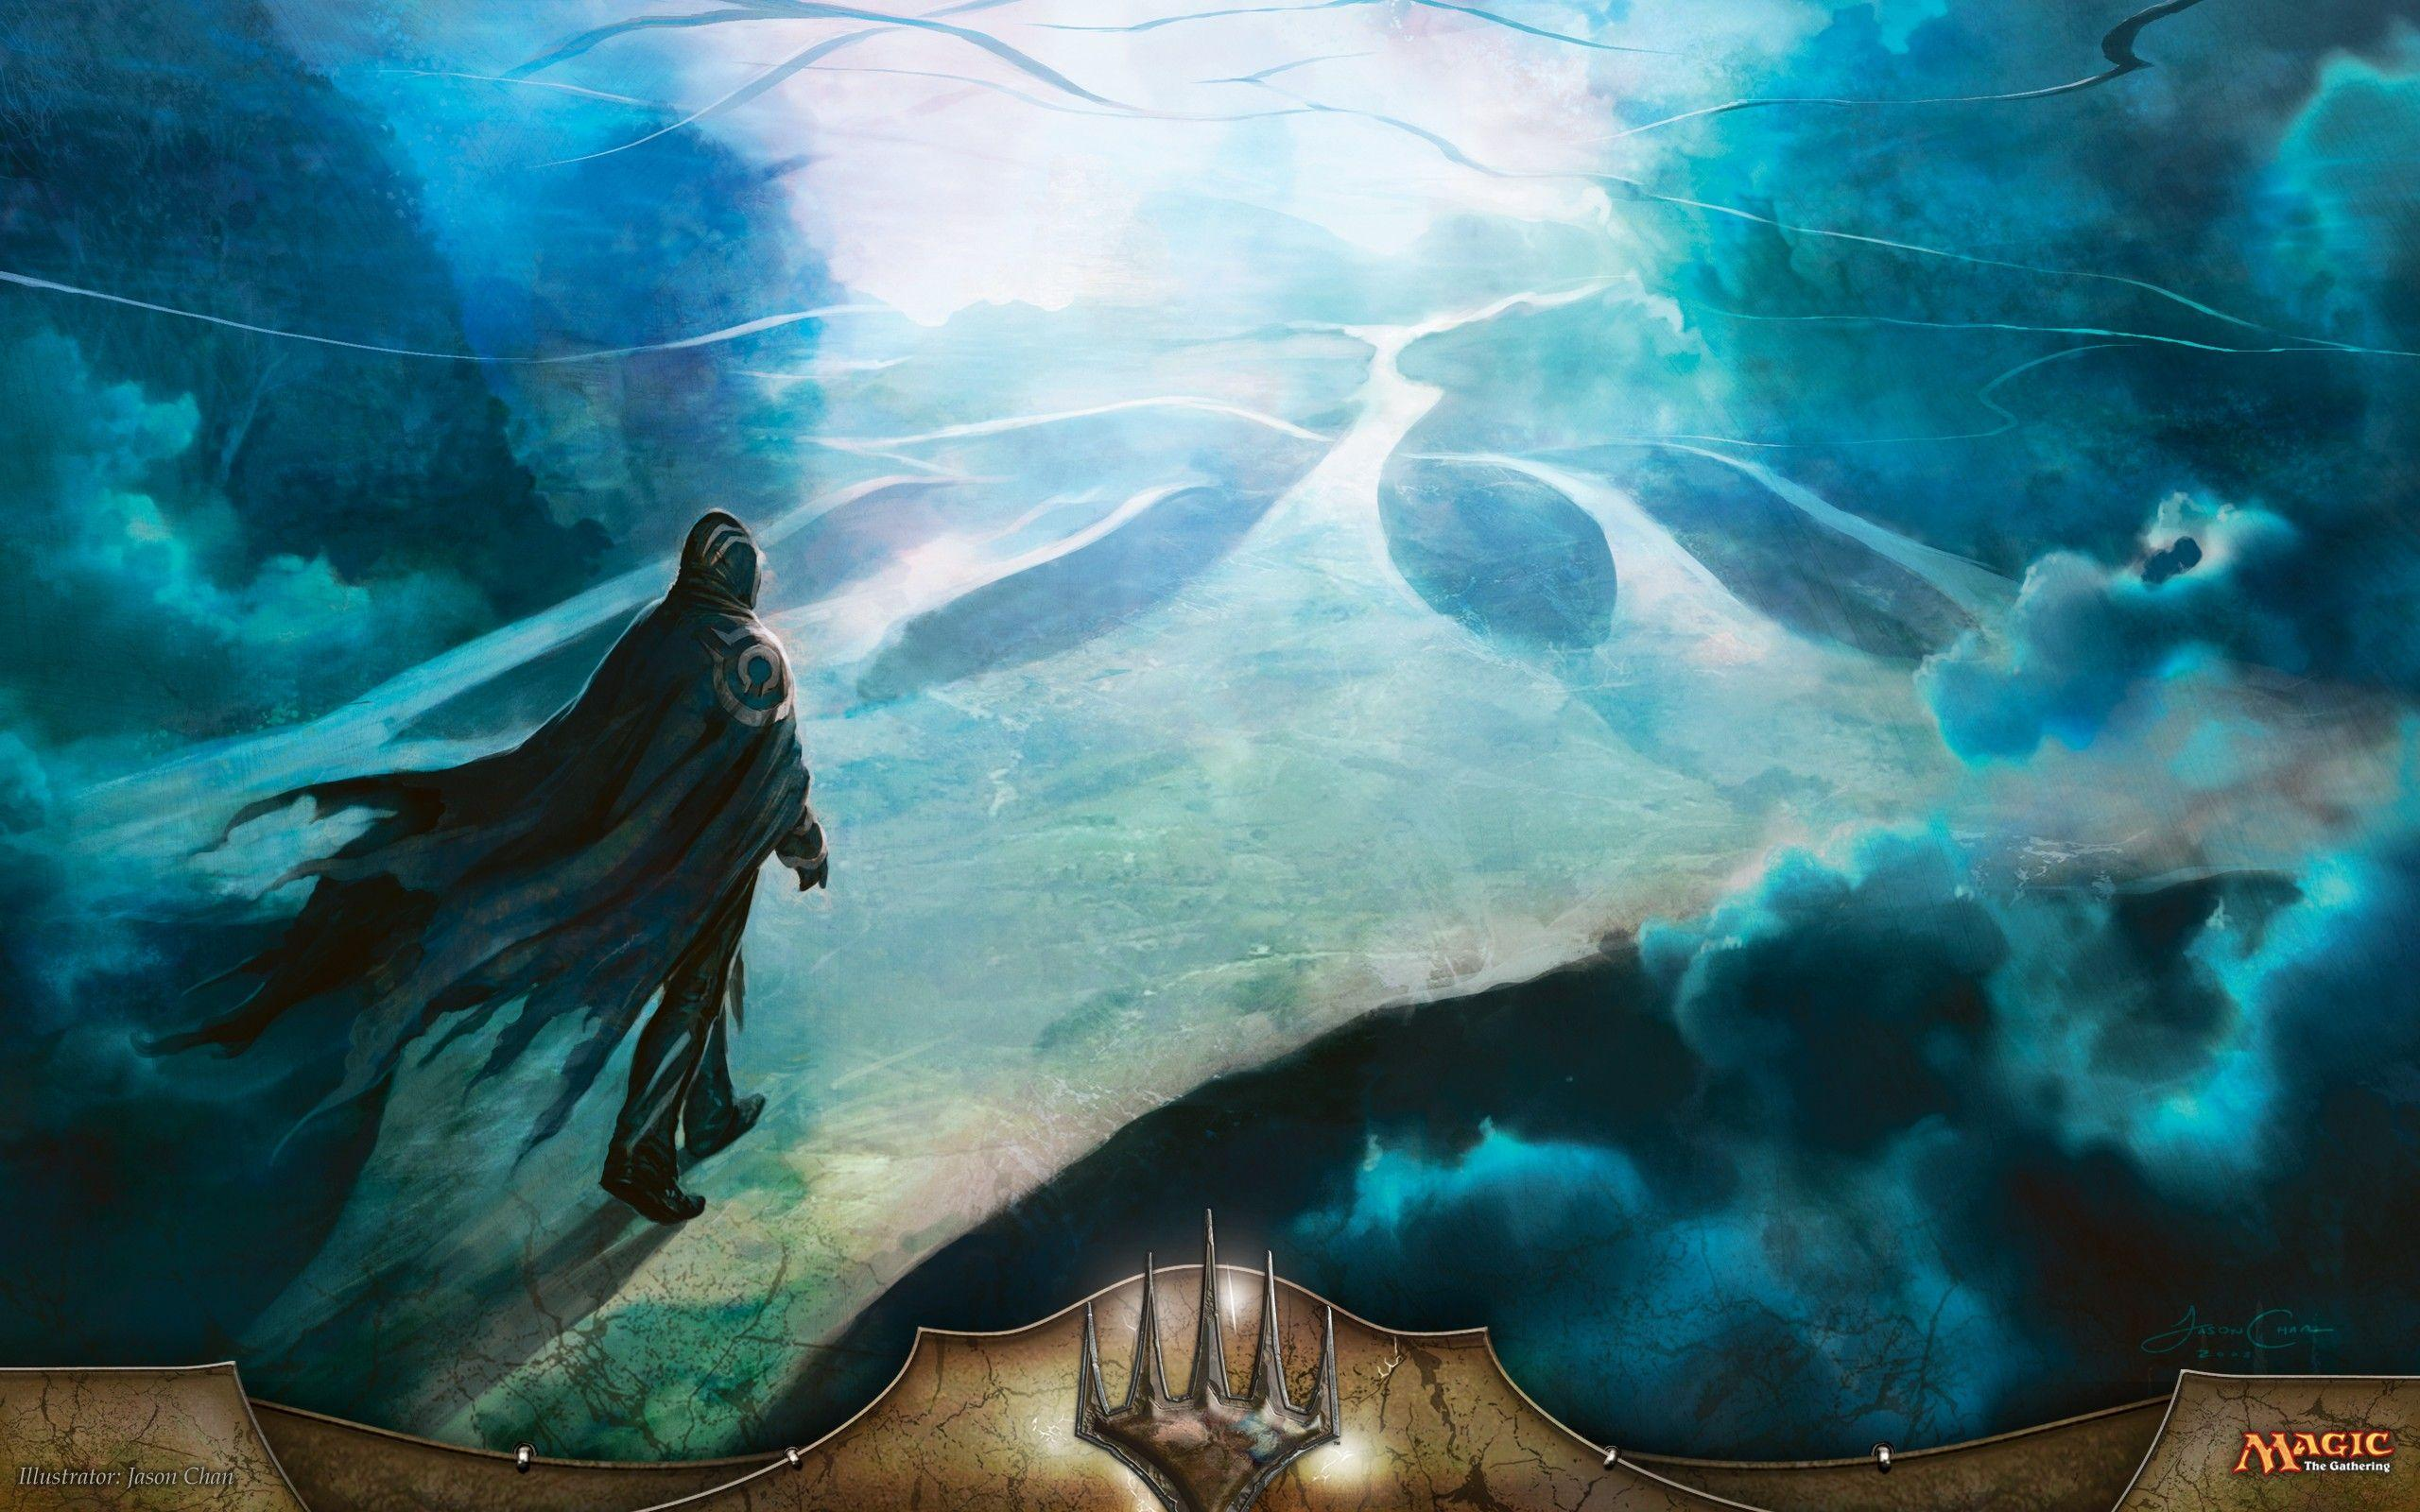 Mtg Wallpaper Magic The Gathering Desktop Backgrounds Wallpaper Cave